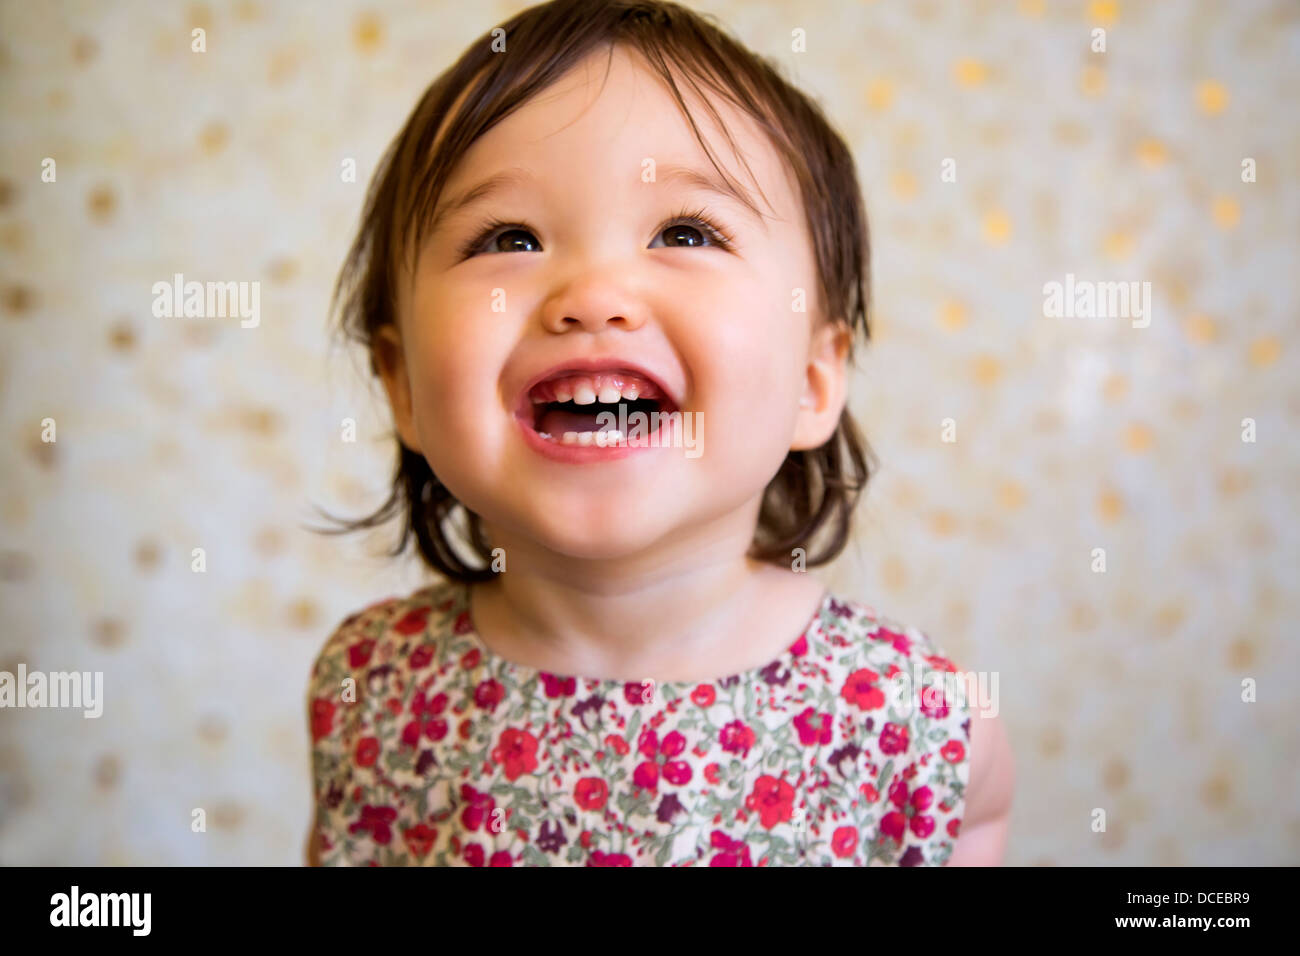 16 months old smiling baby girl - Stock Image